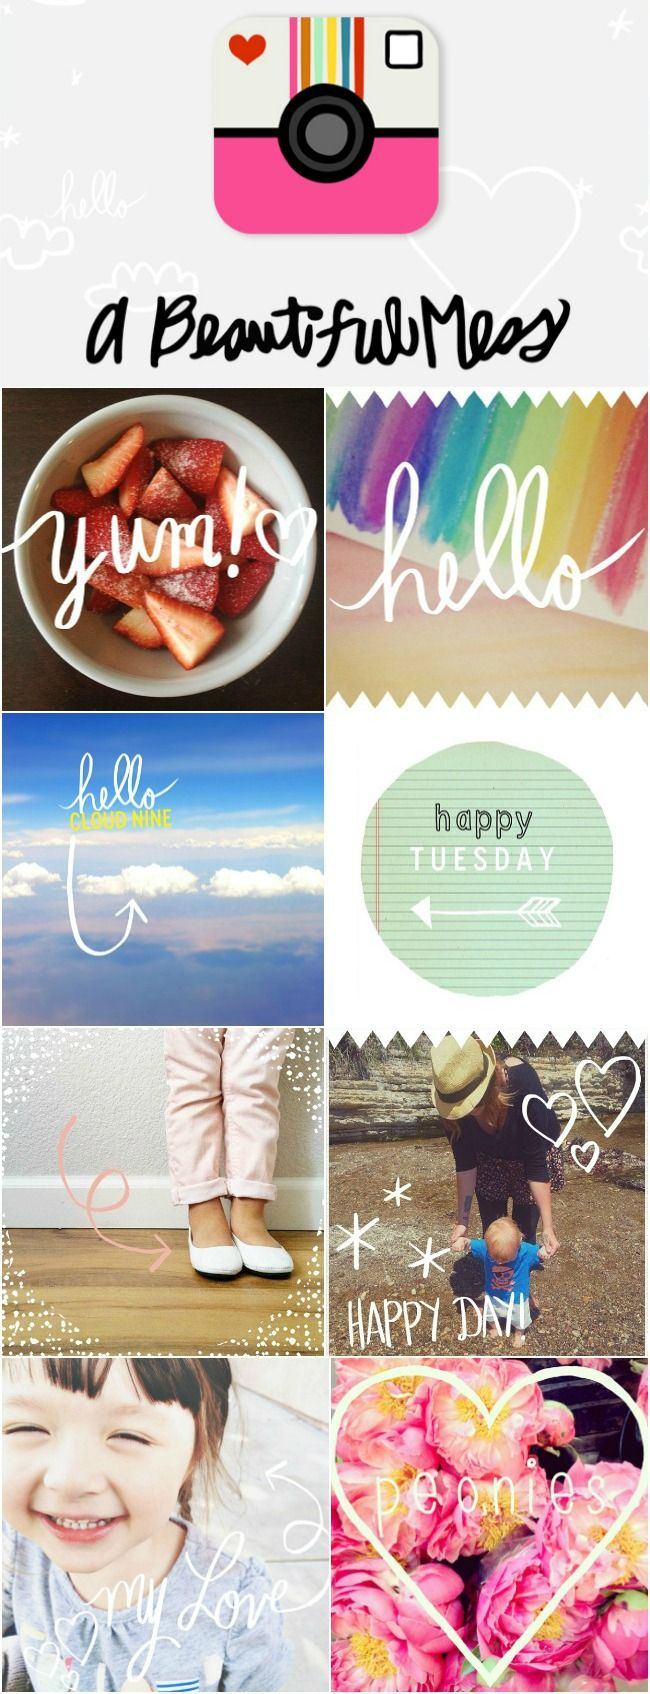 A Beautiful Mess App - the new must-have iPhone photo editing app! #abeautifulmess